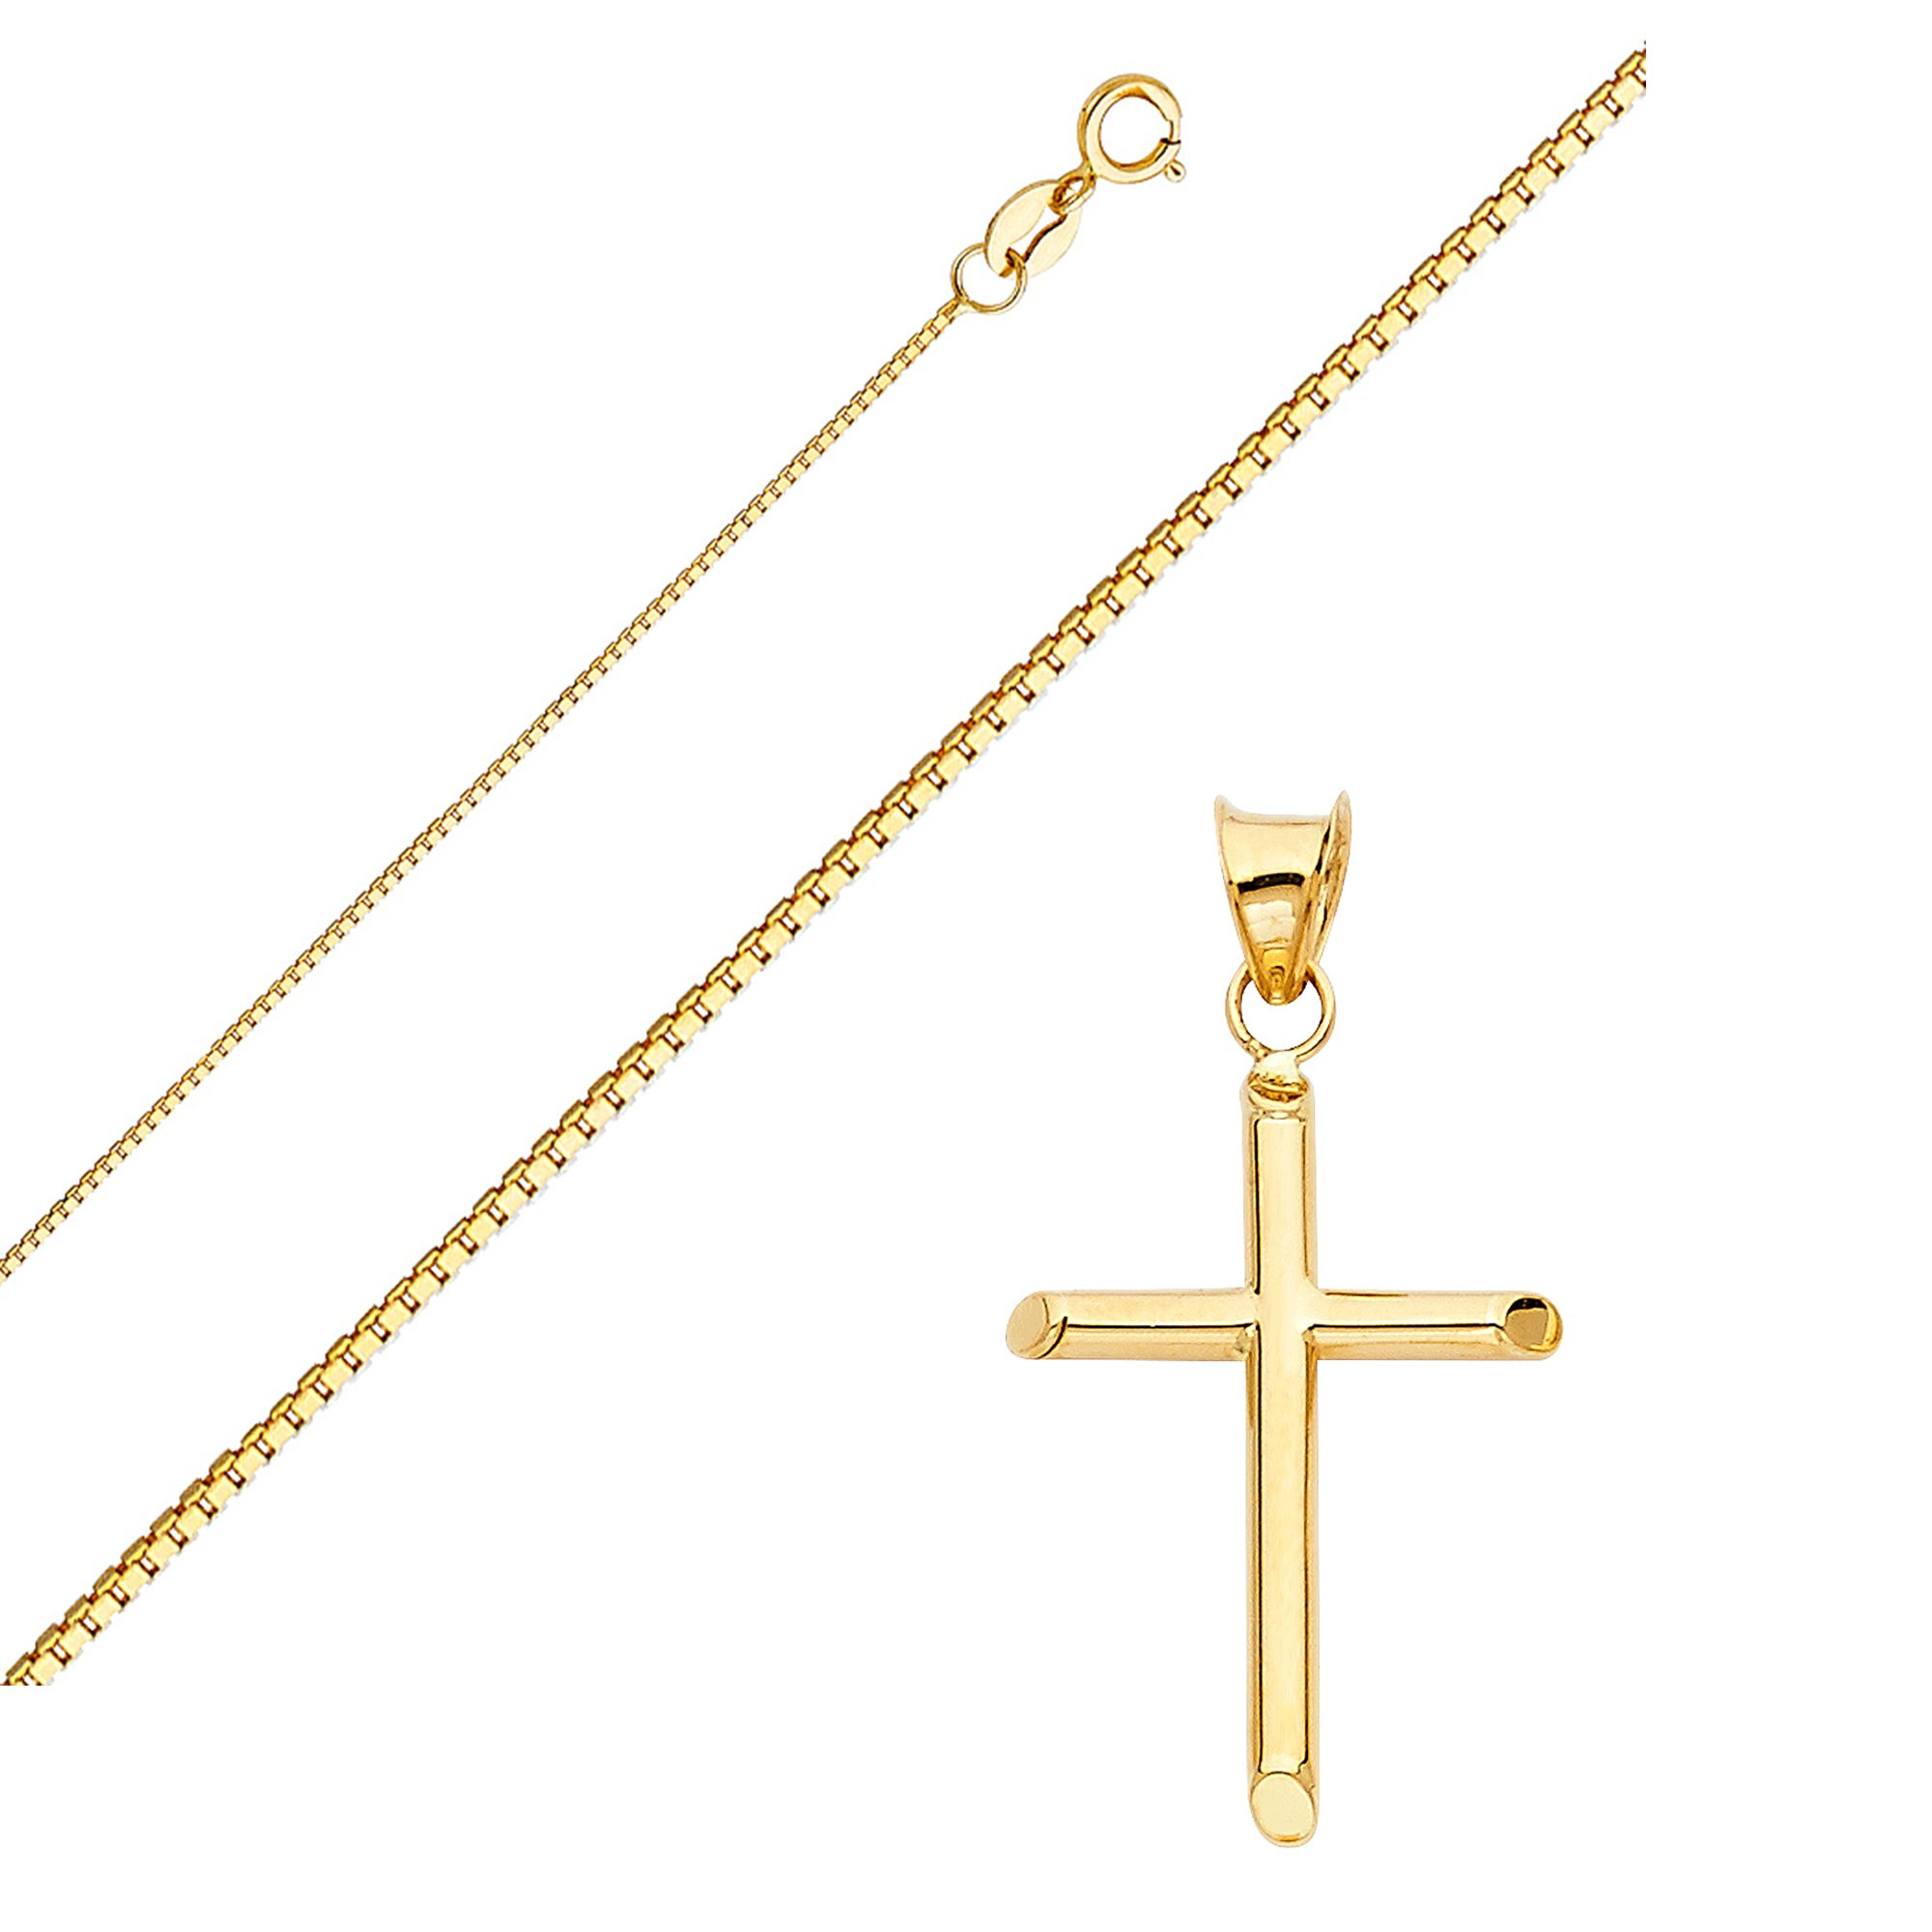 Solid 14K Gold Box Chain Cross Pendant Necklace - Choose Chain Length and Width (24.0, Box Chain - 0.8mm) by Top Gold & Diamond Jewelry (Image #1)